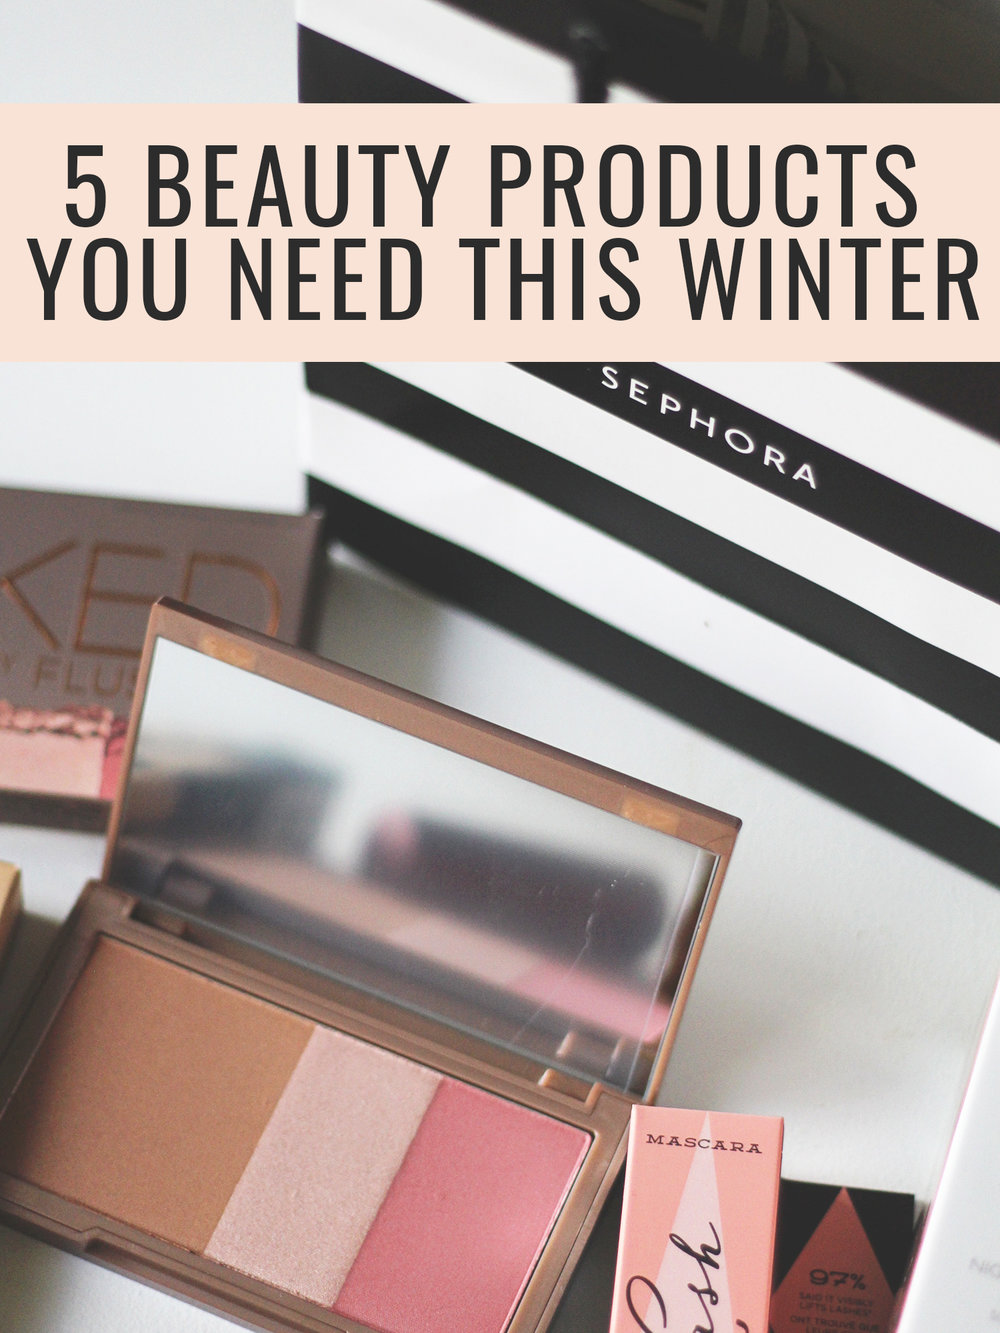 5 beauty products you need this winter